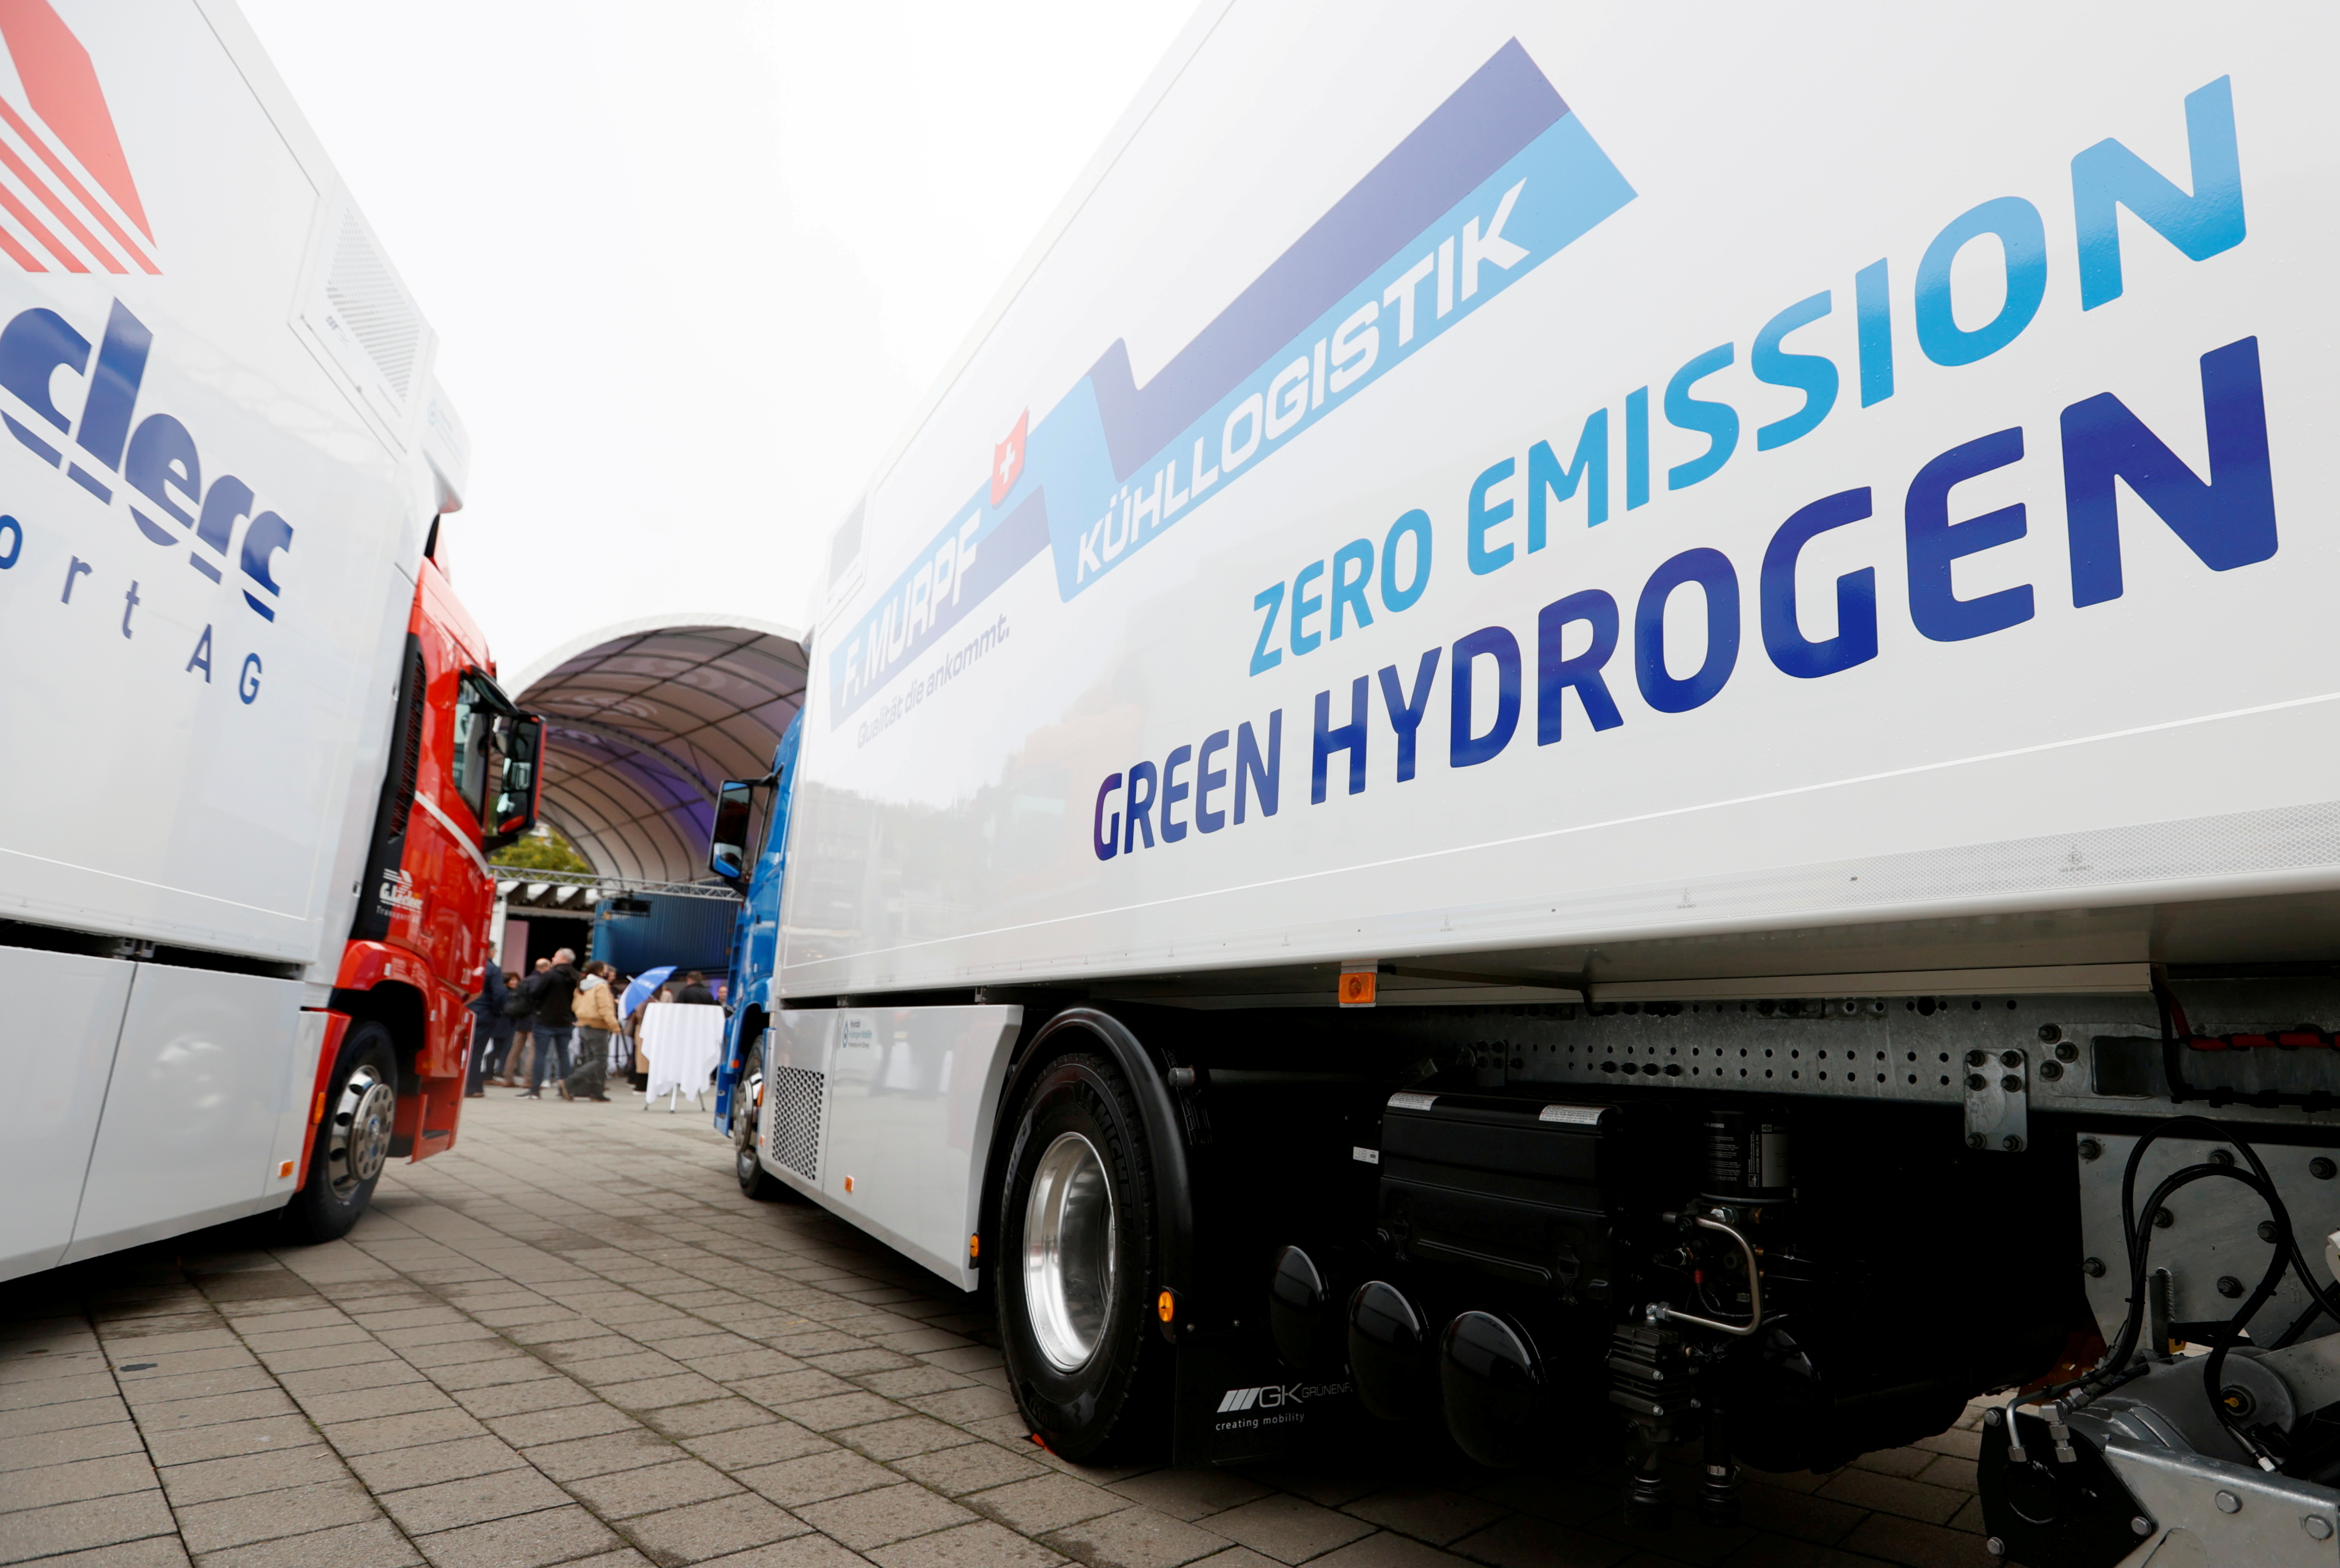 A new hydrogen fuel cell truck made by Hyundai is pictured at the Verkehrshaus Luzern (Swiss Museum of Transport) in Luzern, Switzerland October 7, 2020. REUTERS/Denis Balibouse/File Photo